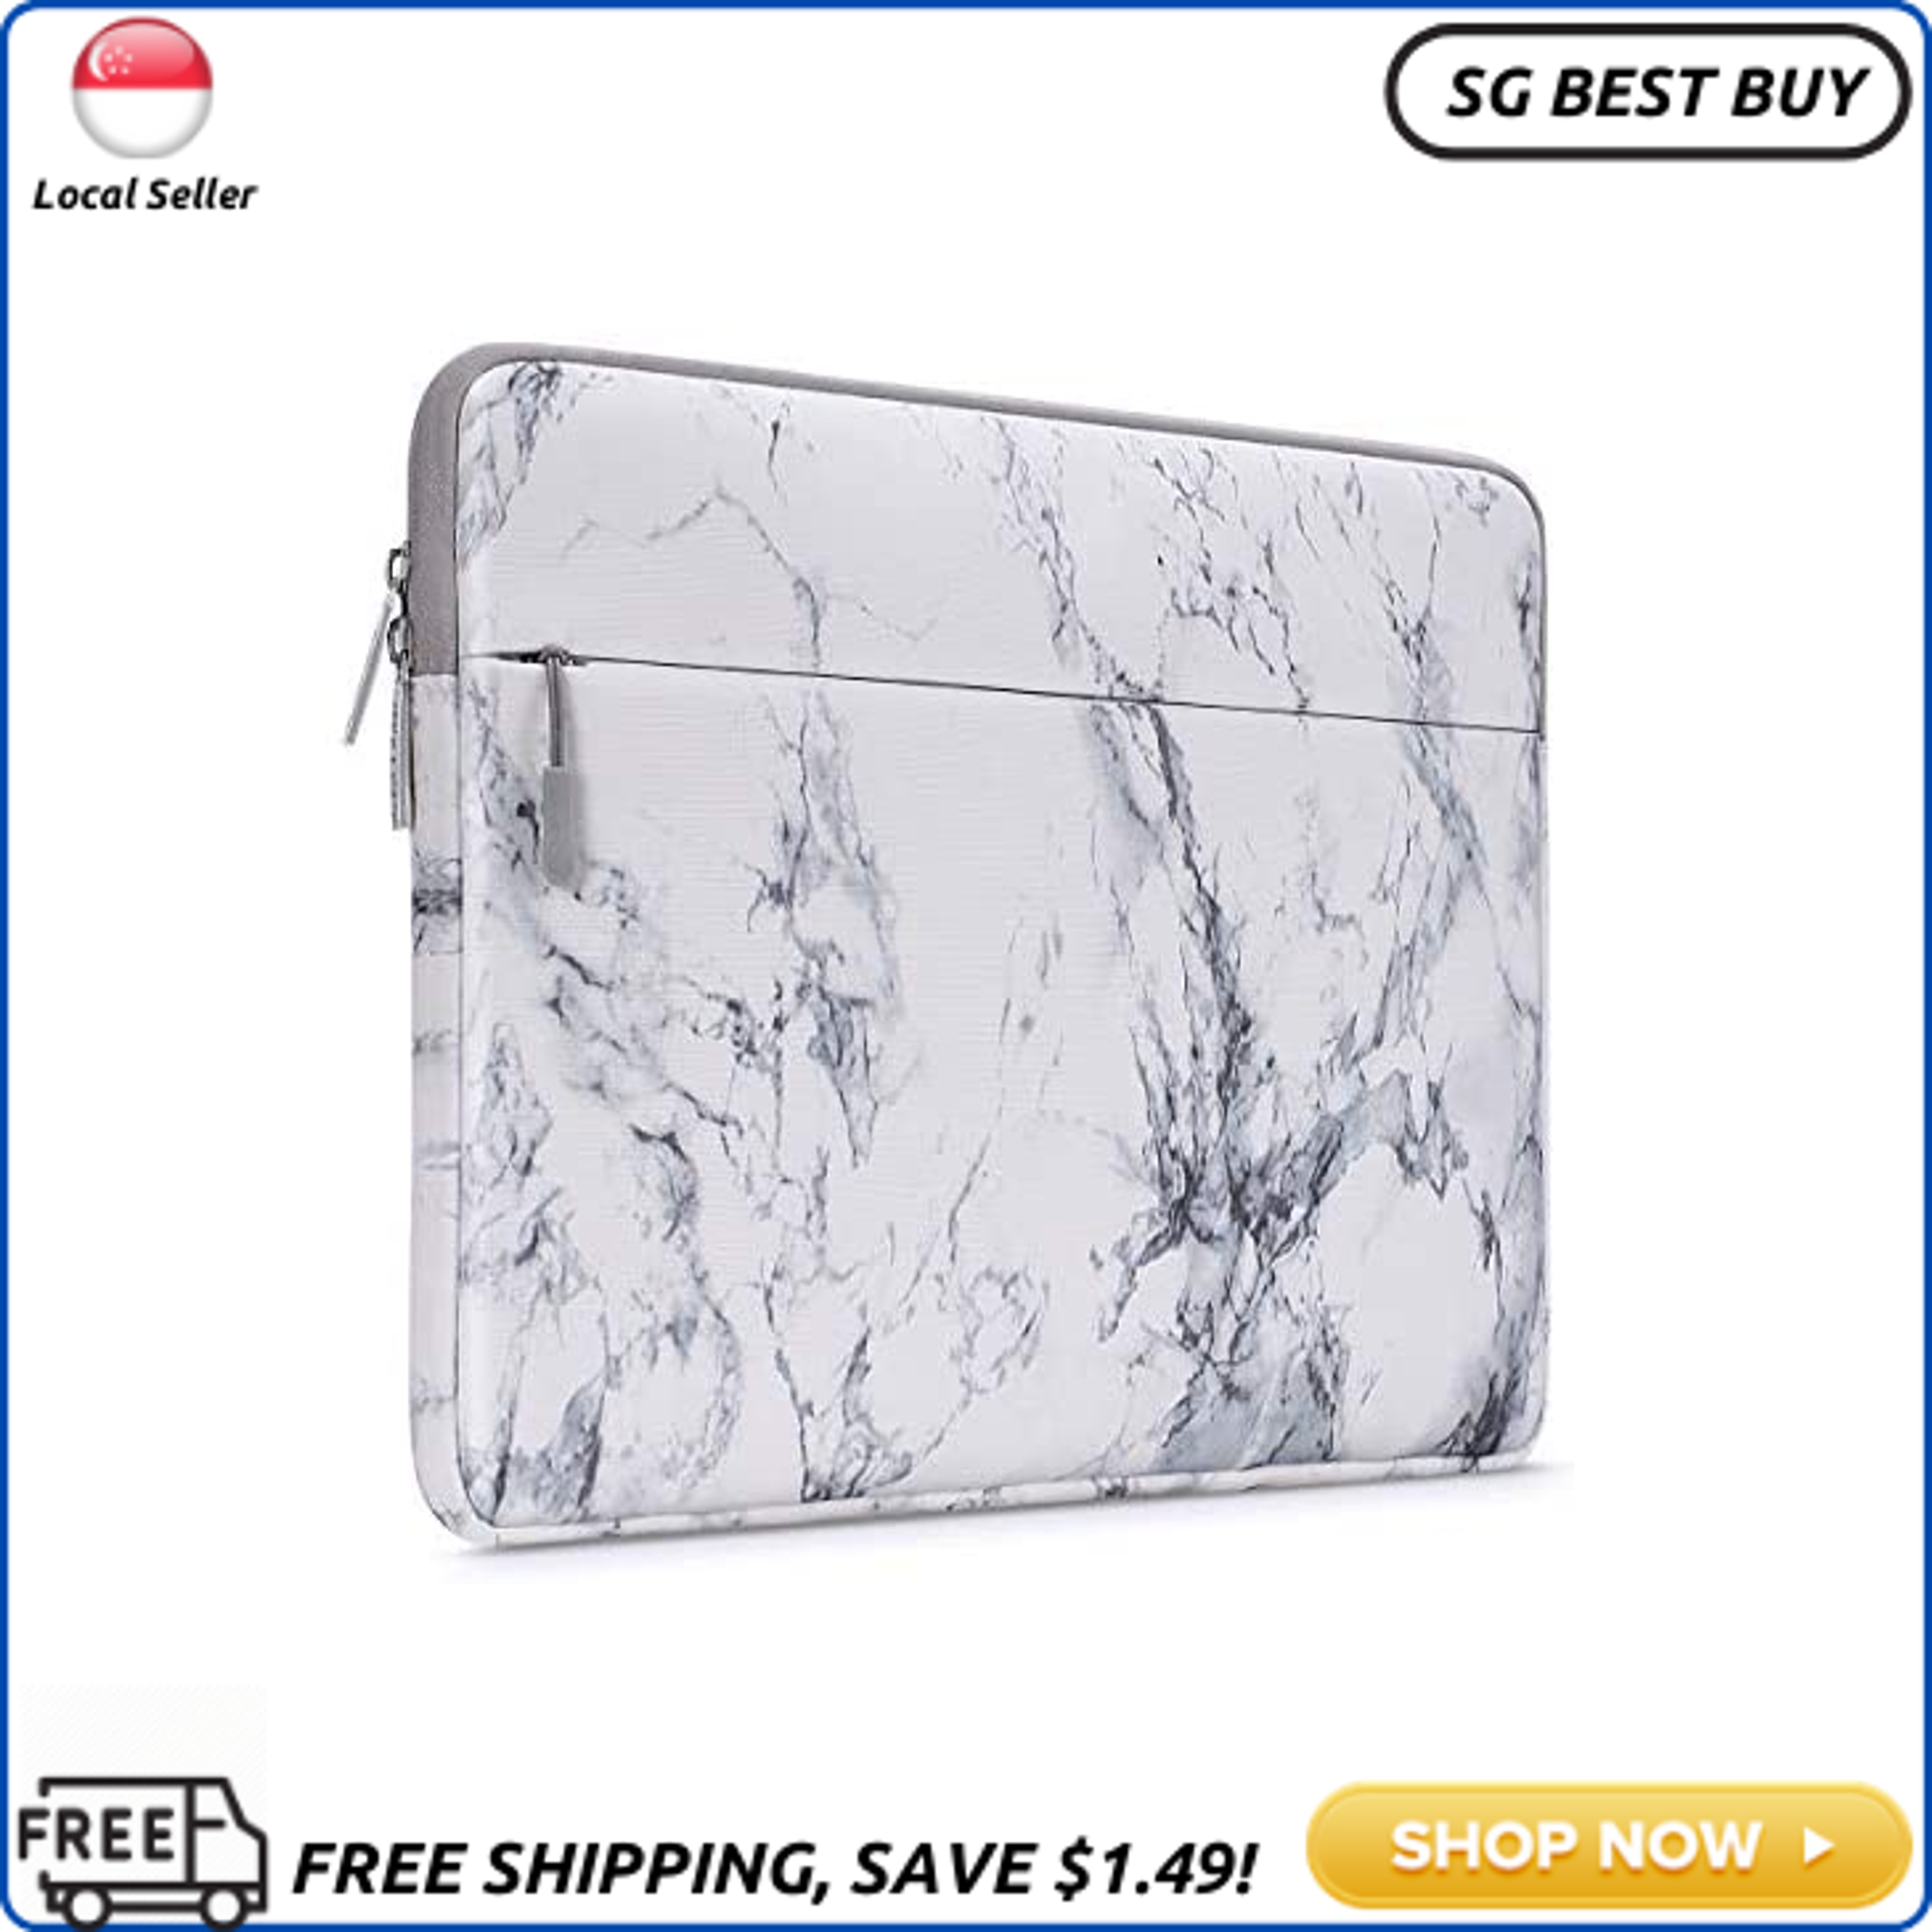 (SG SELLER) MOSISO Laptop Sleeve Bag Compatible with 13-13.3 inch MacBook Pro, MacBook Air, Notebook Computer with Accessory Pocket, Protective Canvas Marble Pattern Carrying Case Cover, White